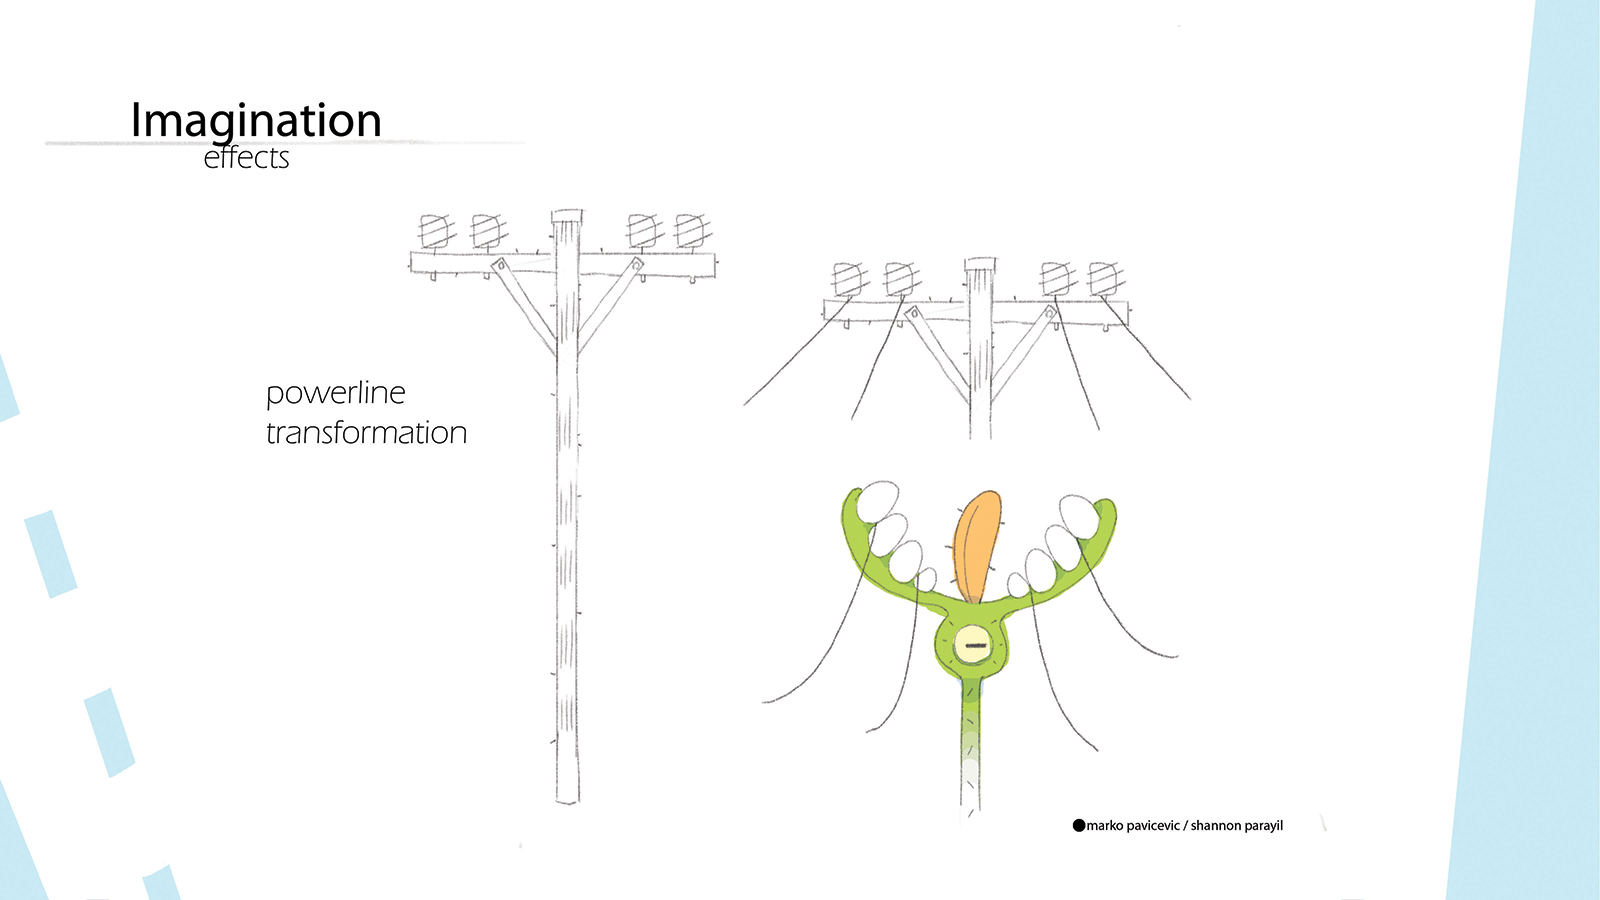 Sketch of a telephone pole turning into an imaginary creature.